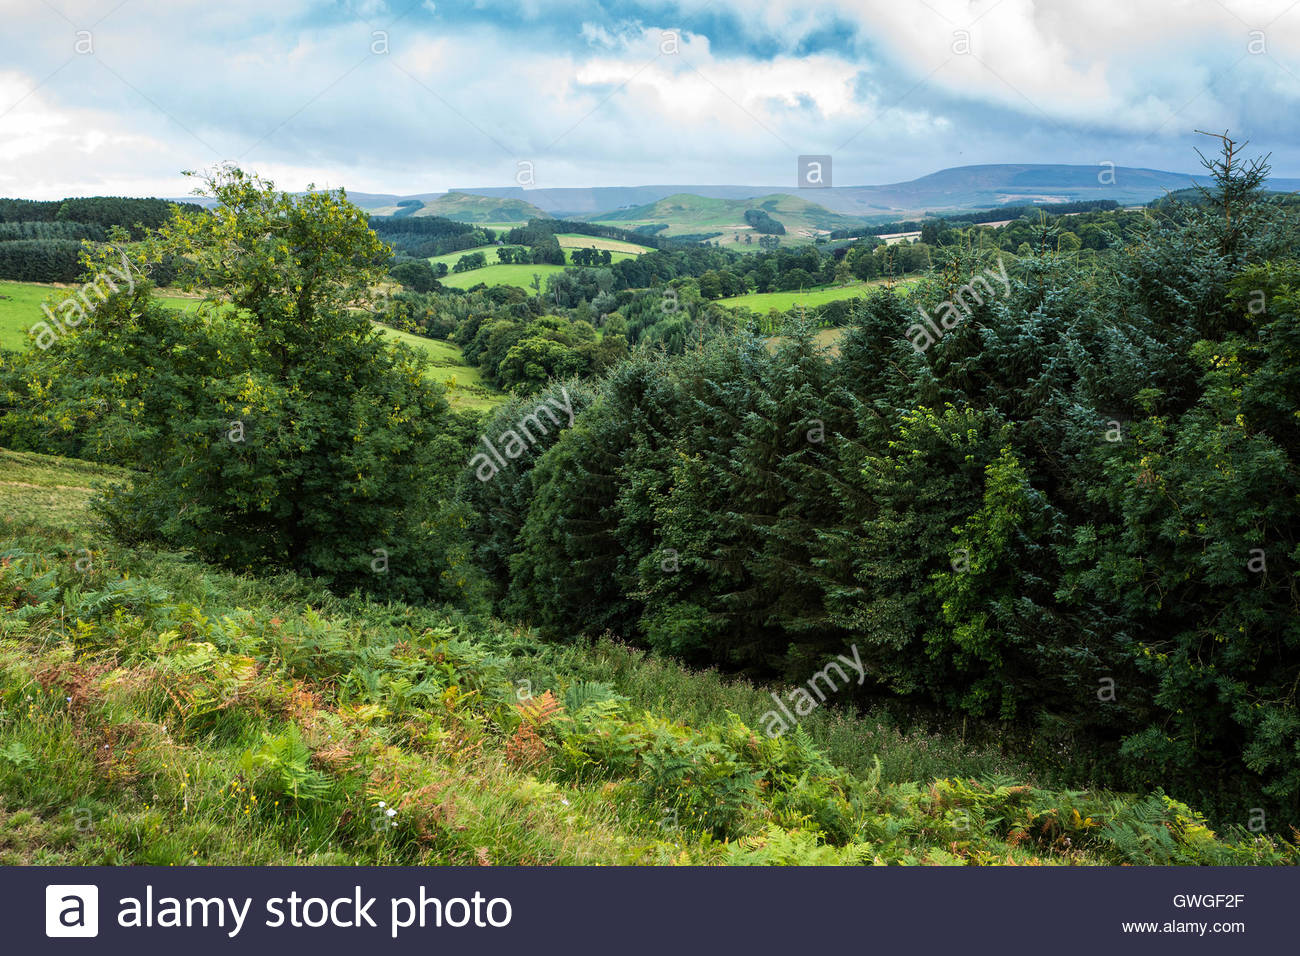 Looking south towards the Carter Bar on the Anglo Scot Border from Edgerston. - Stock Image